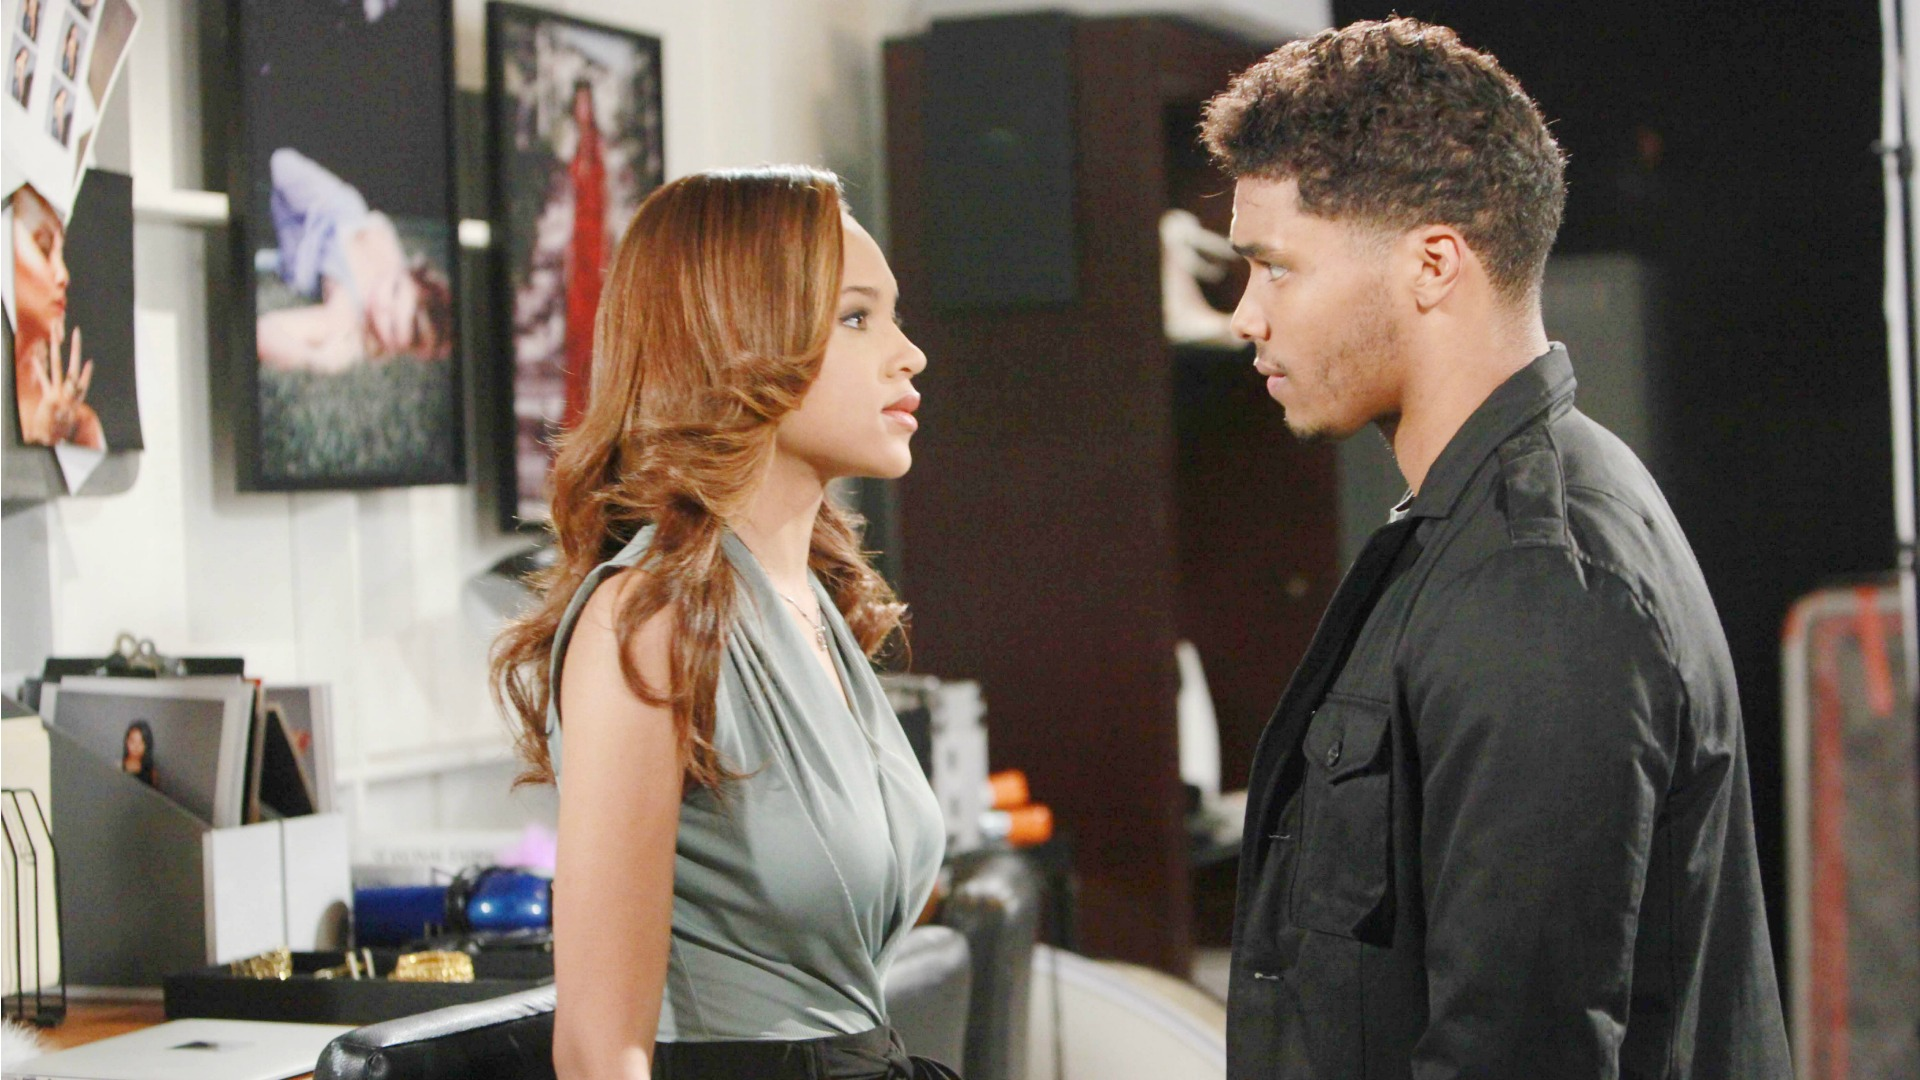 Backstage at the FC fashion show, Zende and Nicole finally have a heart-to-heart about their situation.